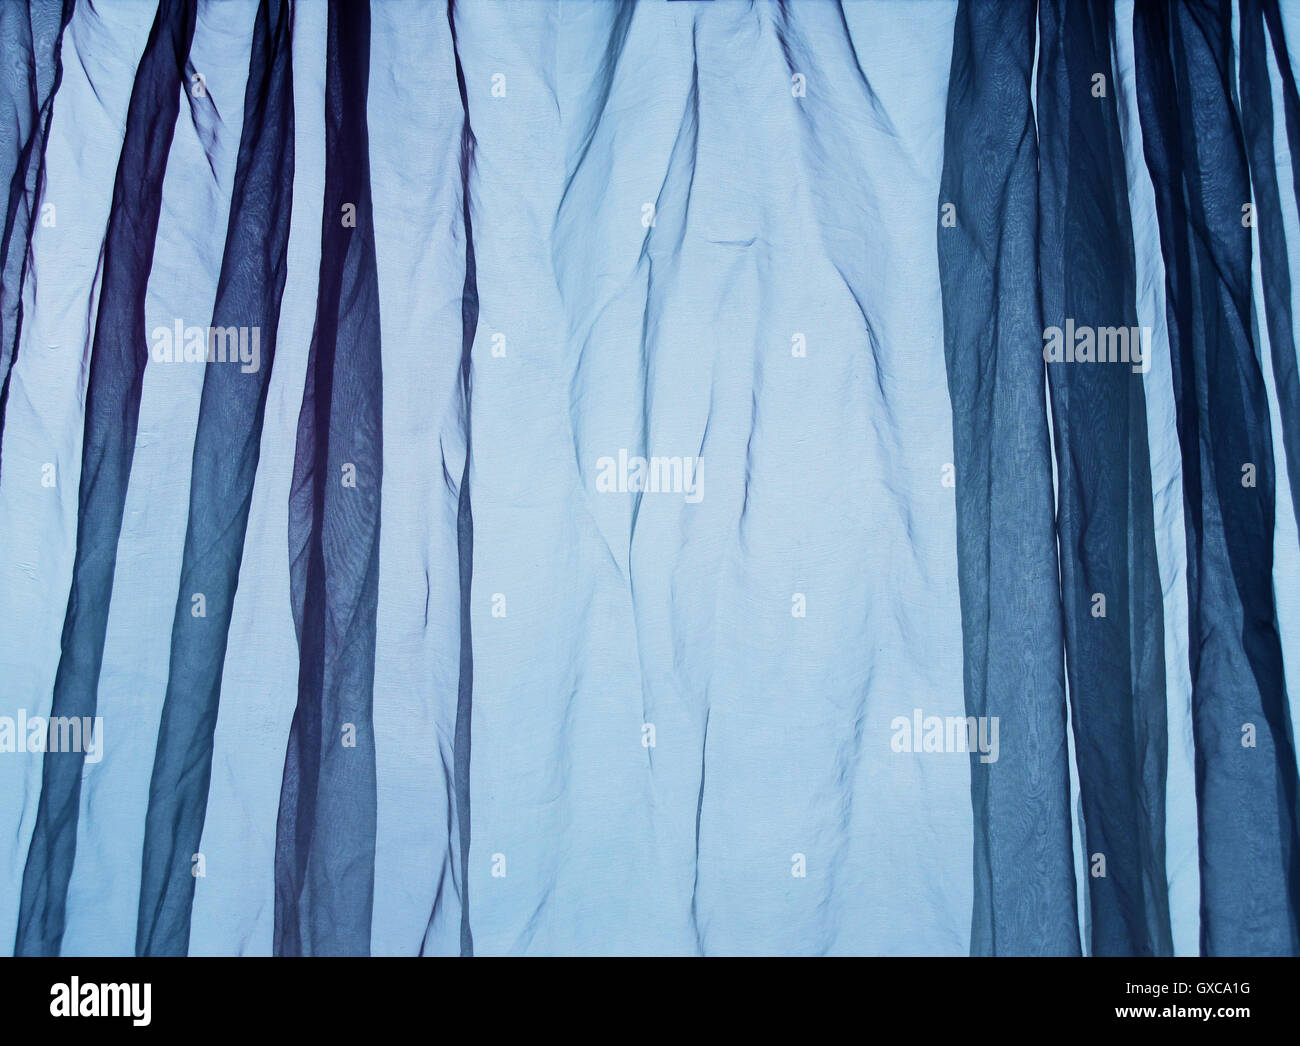 Voile curtain background blue - Stock Image